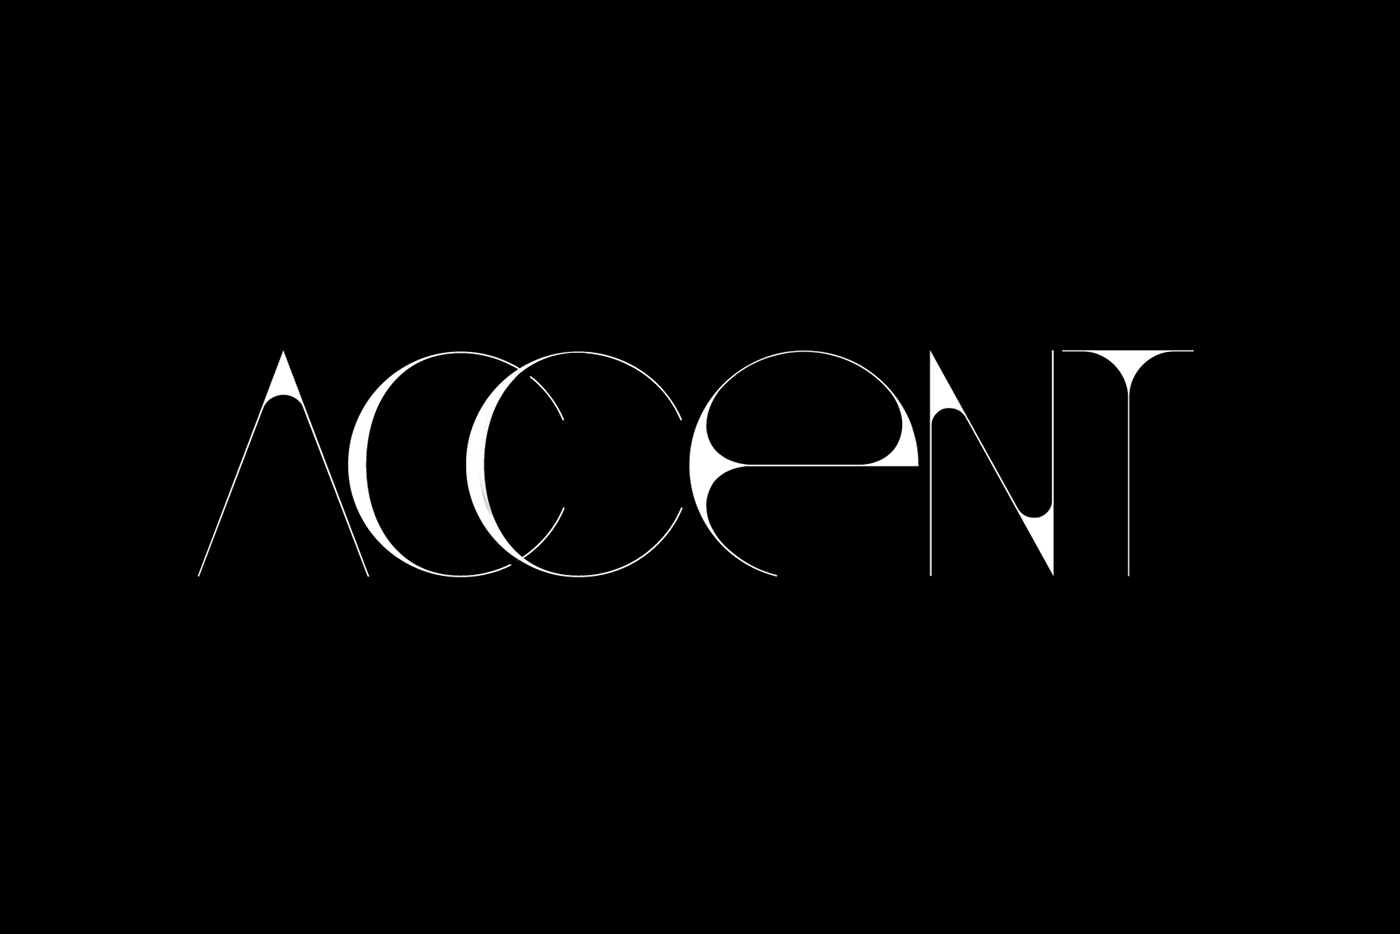 Accent Free Font